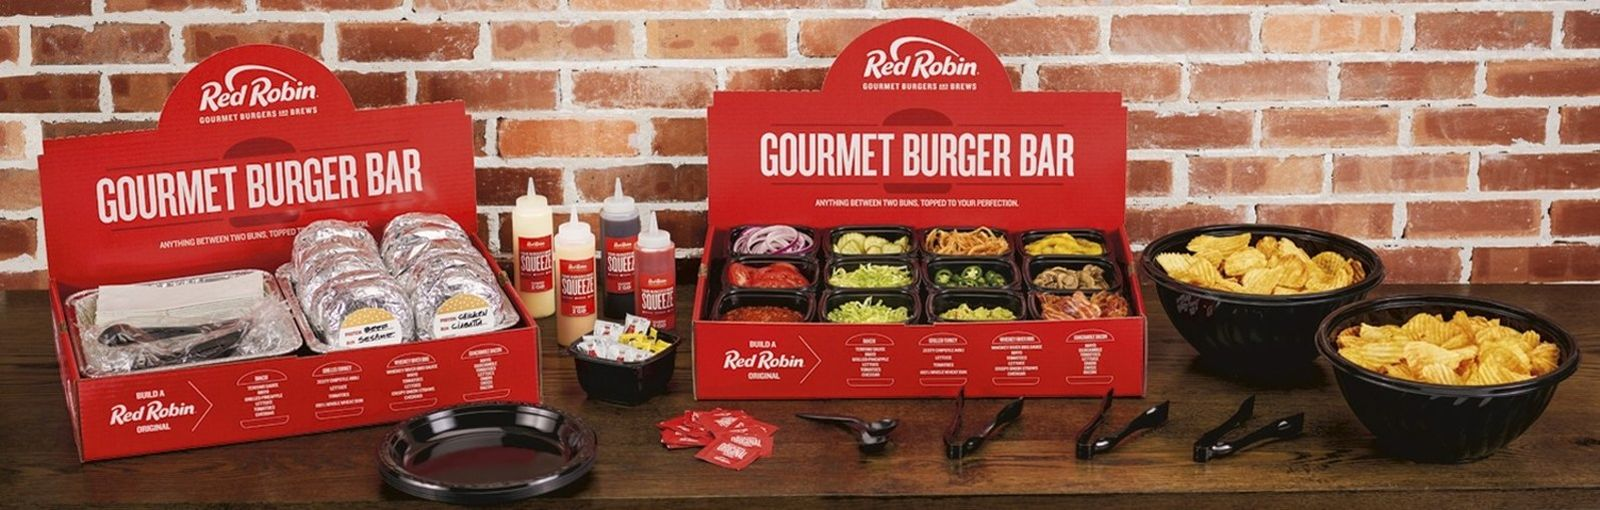 Red Robin Launches Gourmet Burger Bar at Select Locations Across the Country